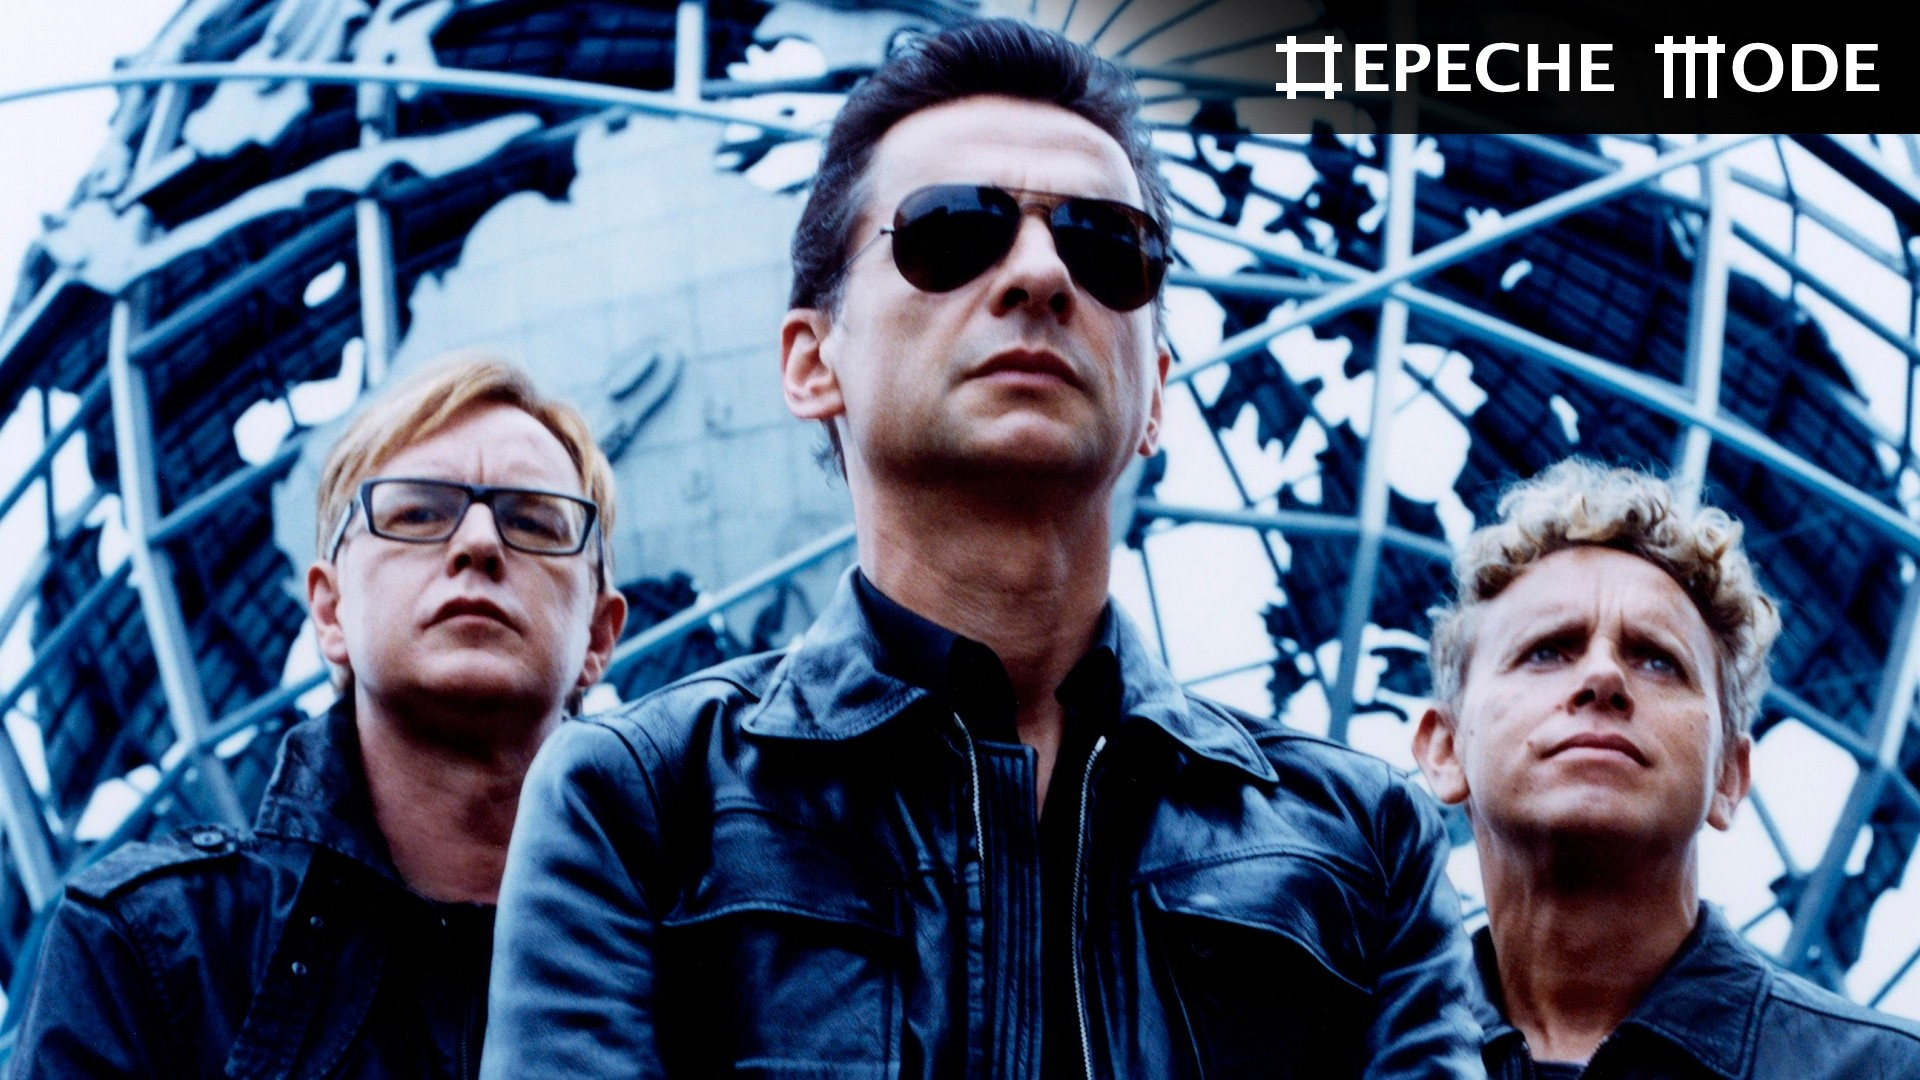 1920x1080 depeche mode, band, members